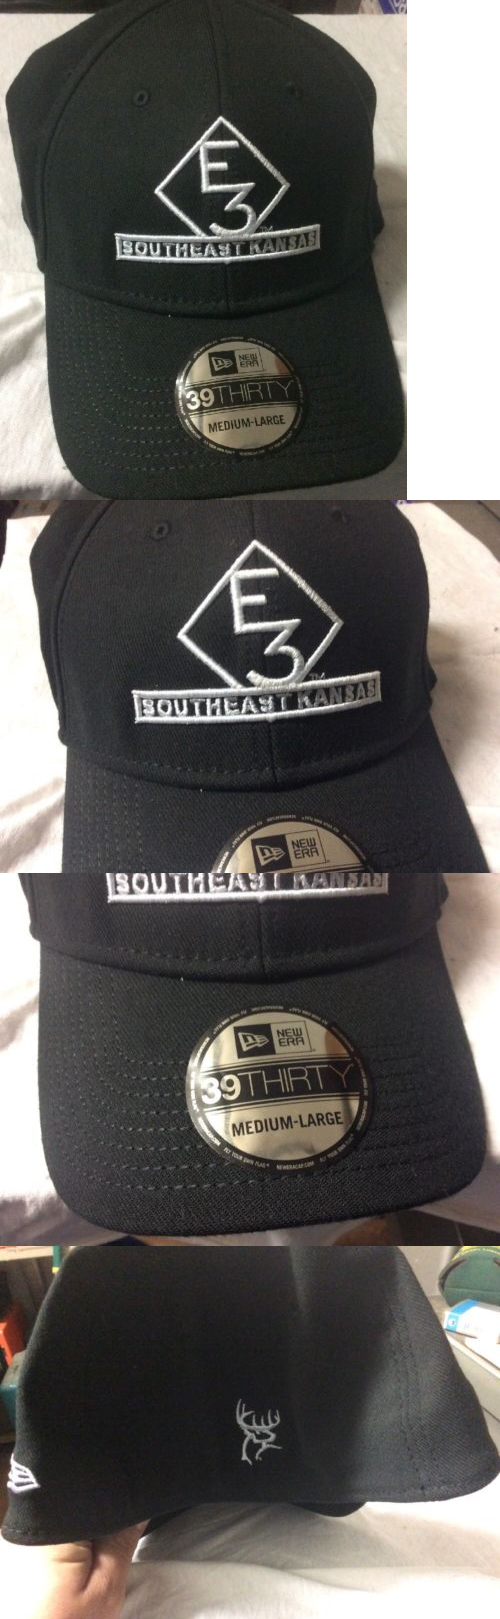 Luke bryan new era hat